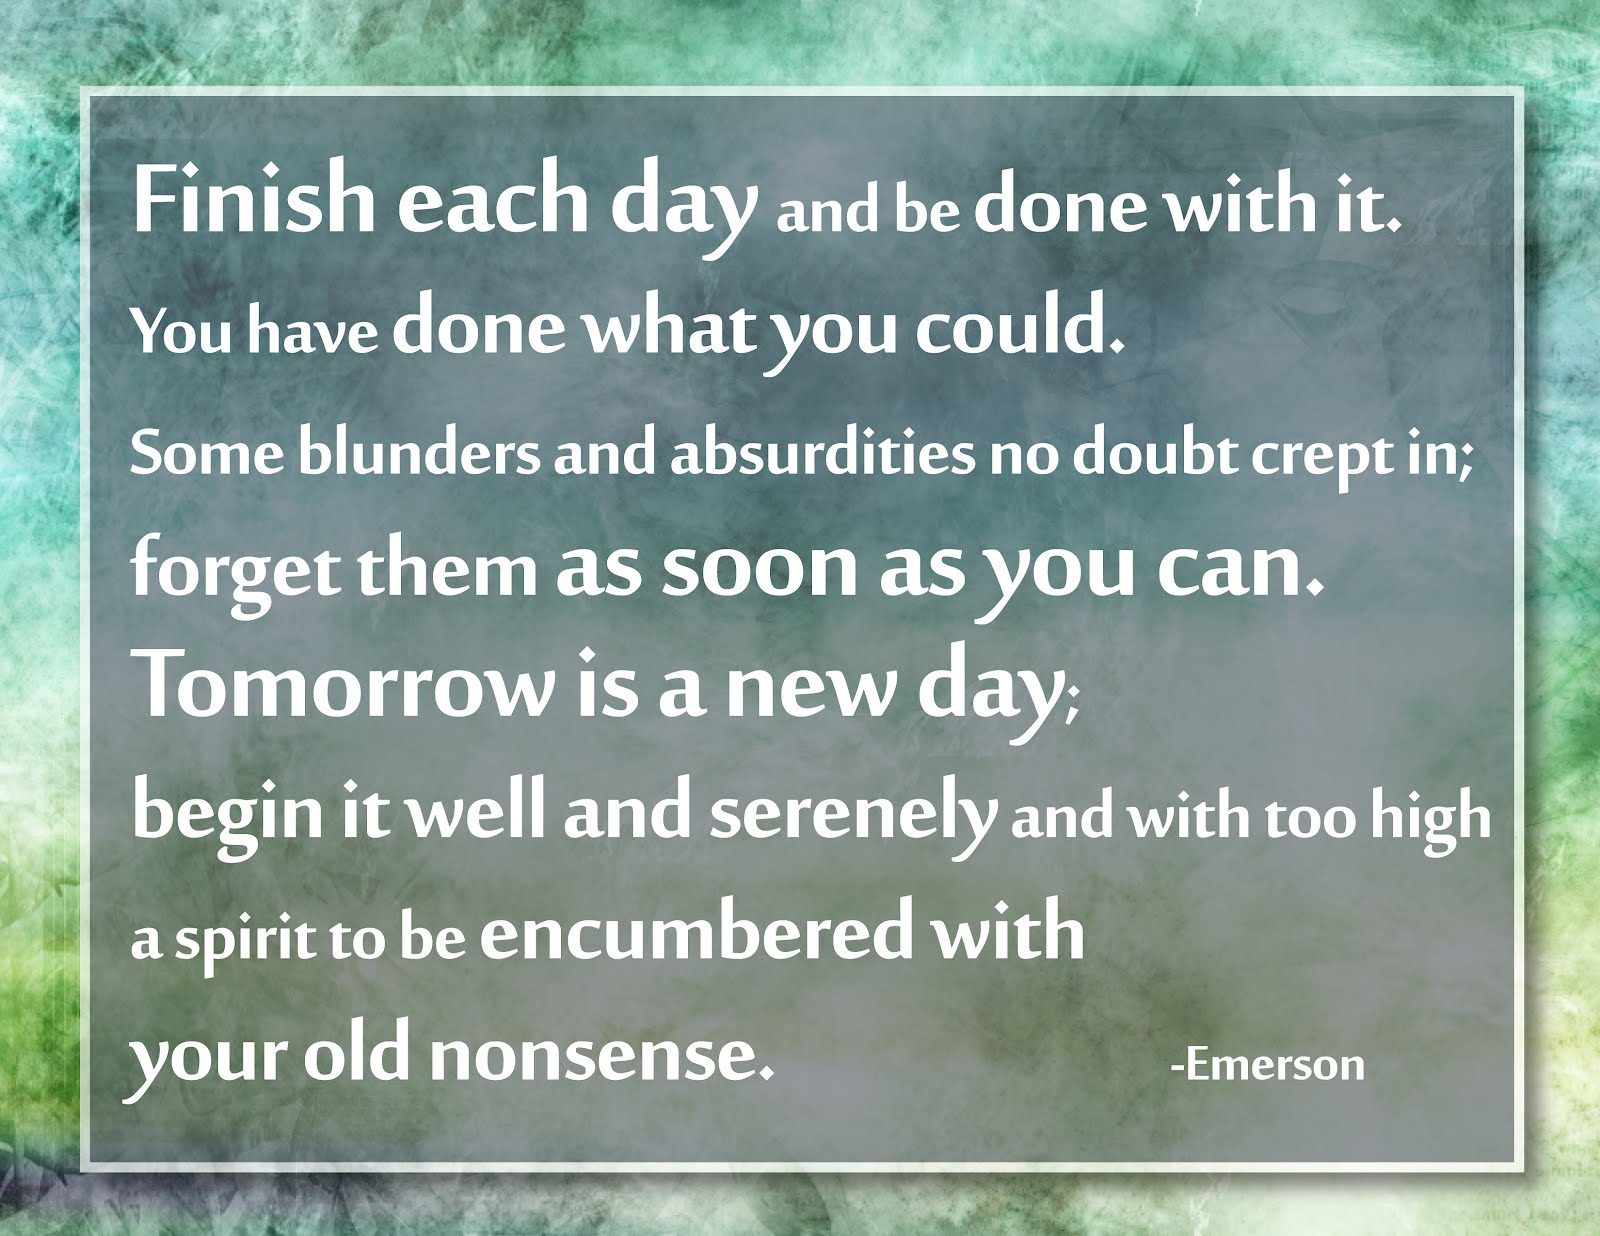 Emerson-Quote-for-a-New-Day